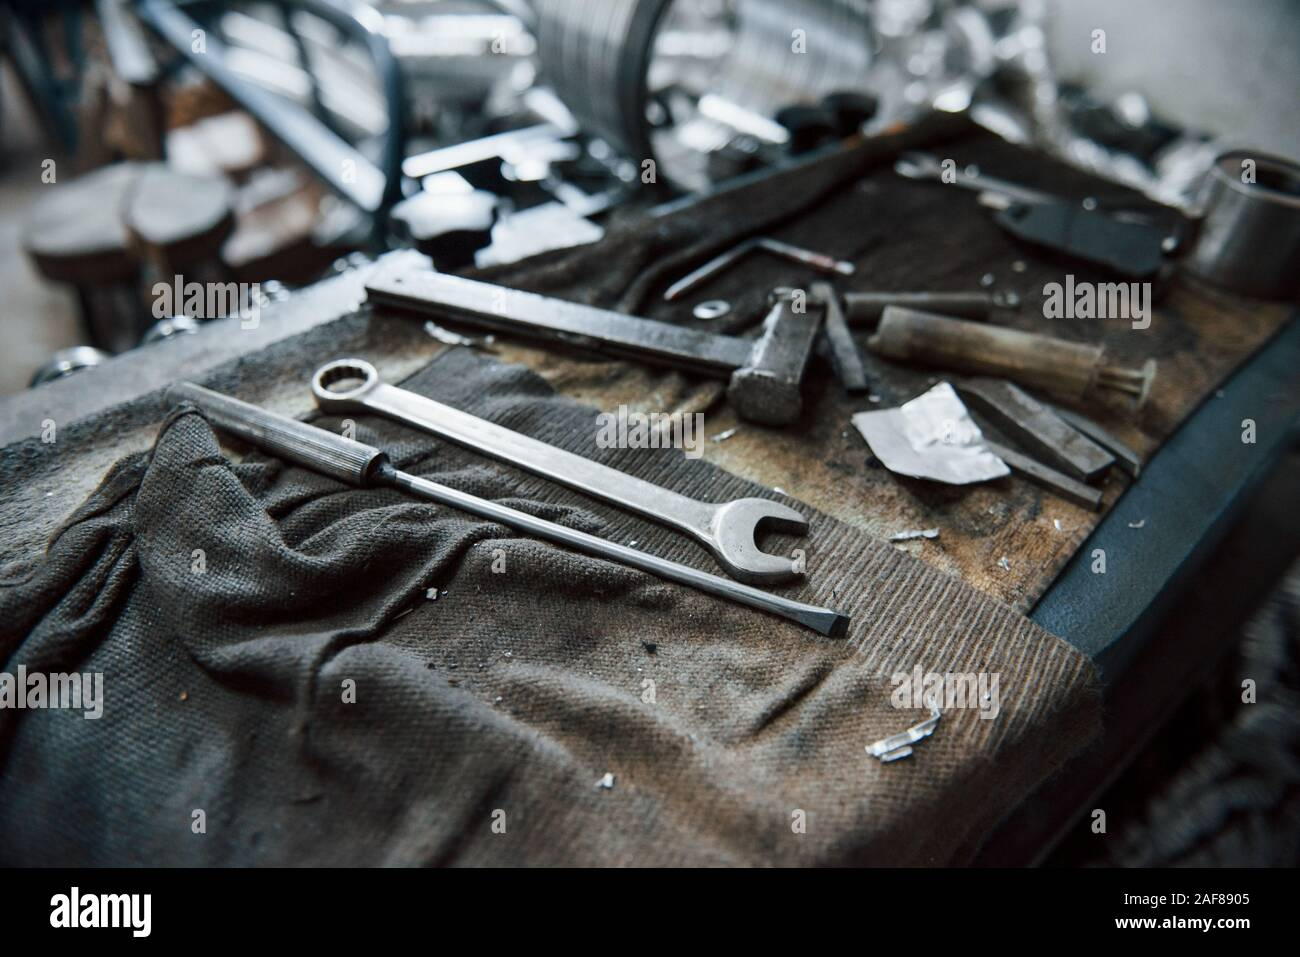 Place of work. Tools on dirty table. In garage. Manufactory conception Stock Photo